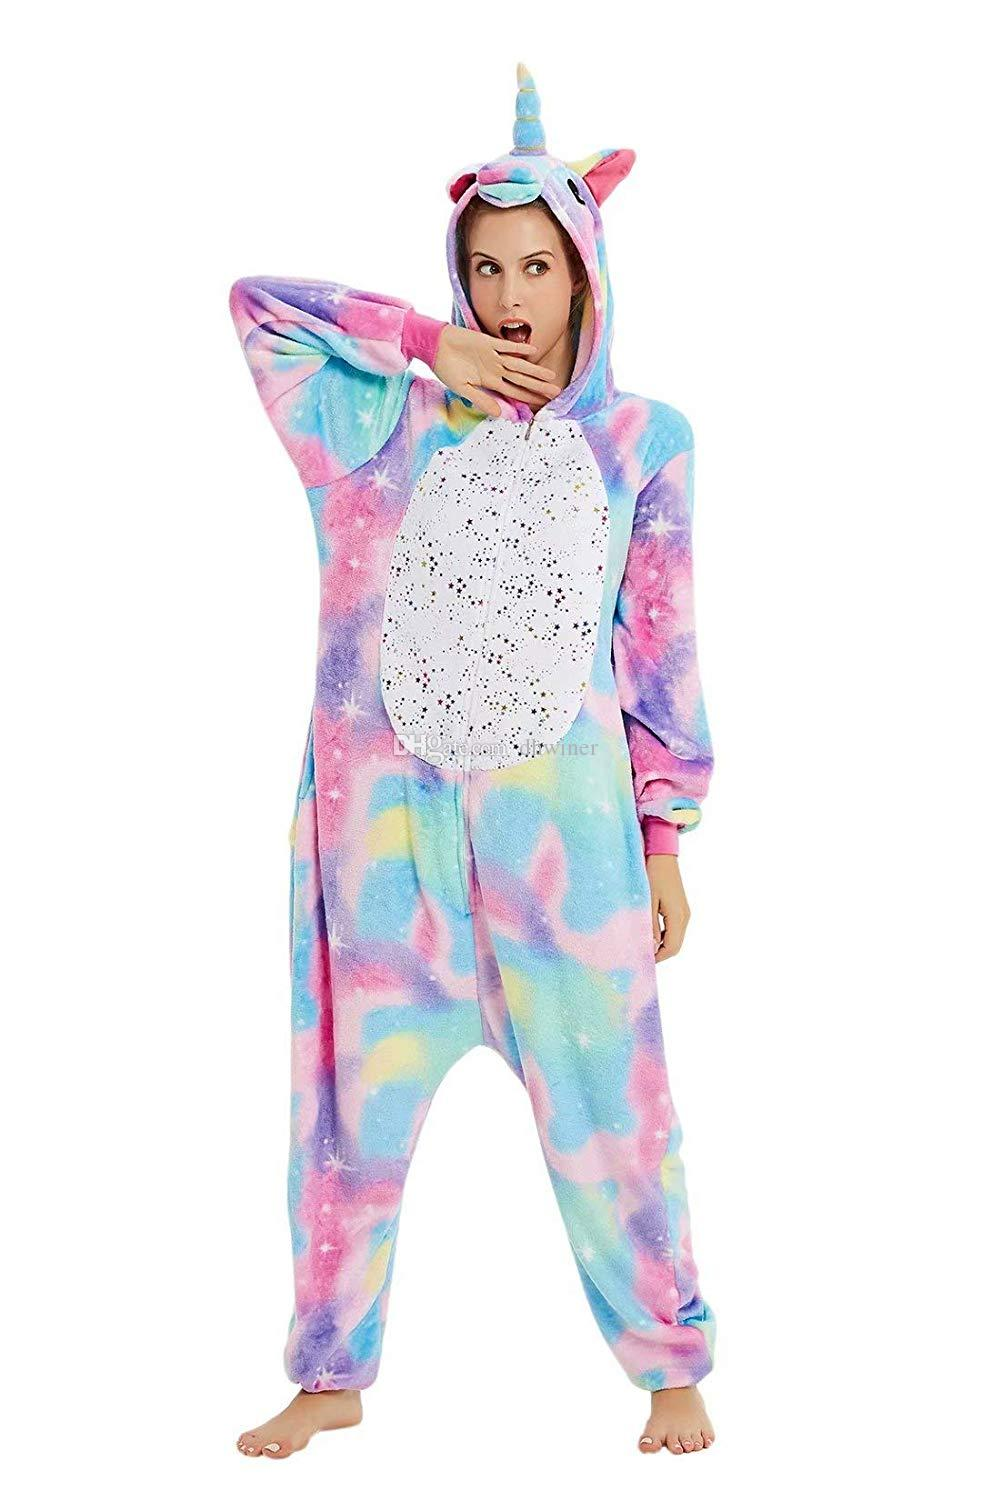 Unisex Unicorn Costume Pyjamas Kigurumi Halloween Cosplay Onepiece Animal Outfit